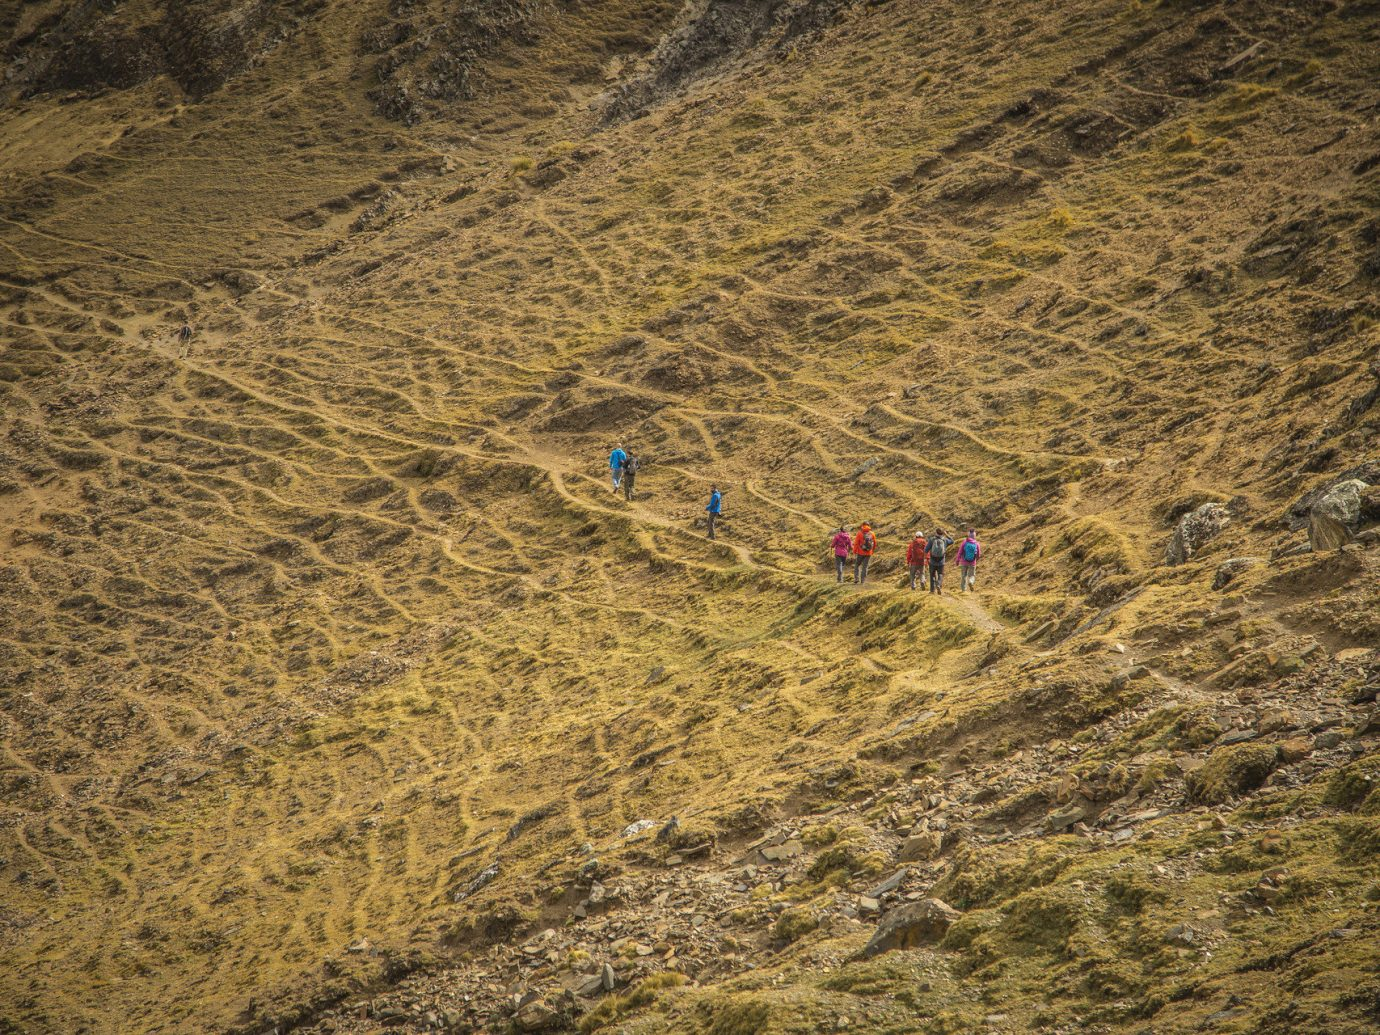 People hiking on Inca Trail